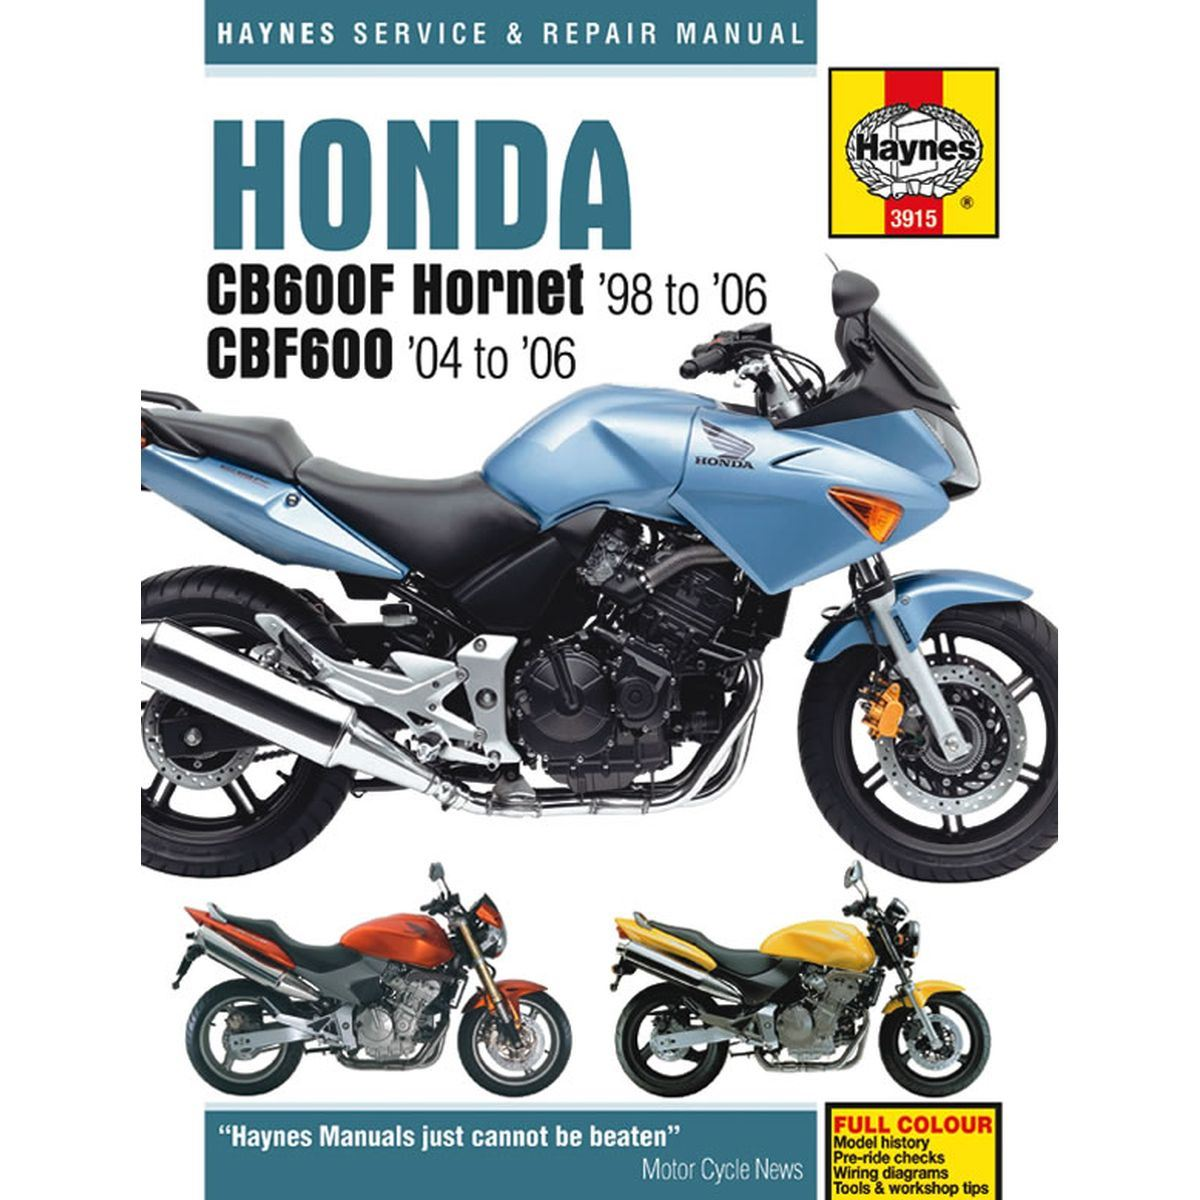 Pleasing Manual Haynes For 1999 Honda Cb 600 Fx Hornet Ebay Wiring 101 Capemaxxcnl